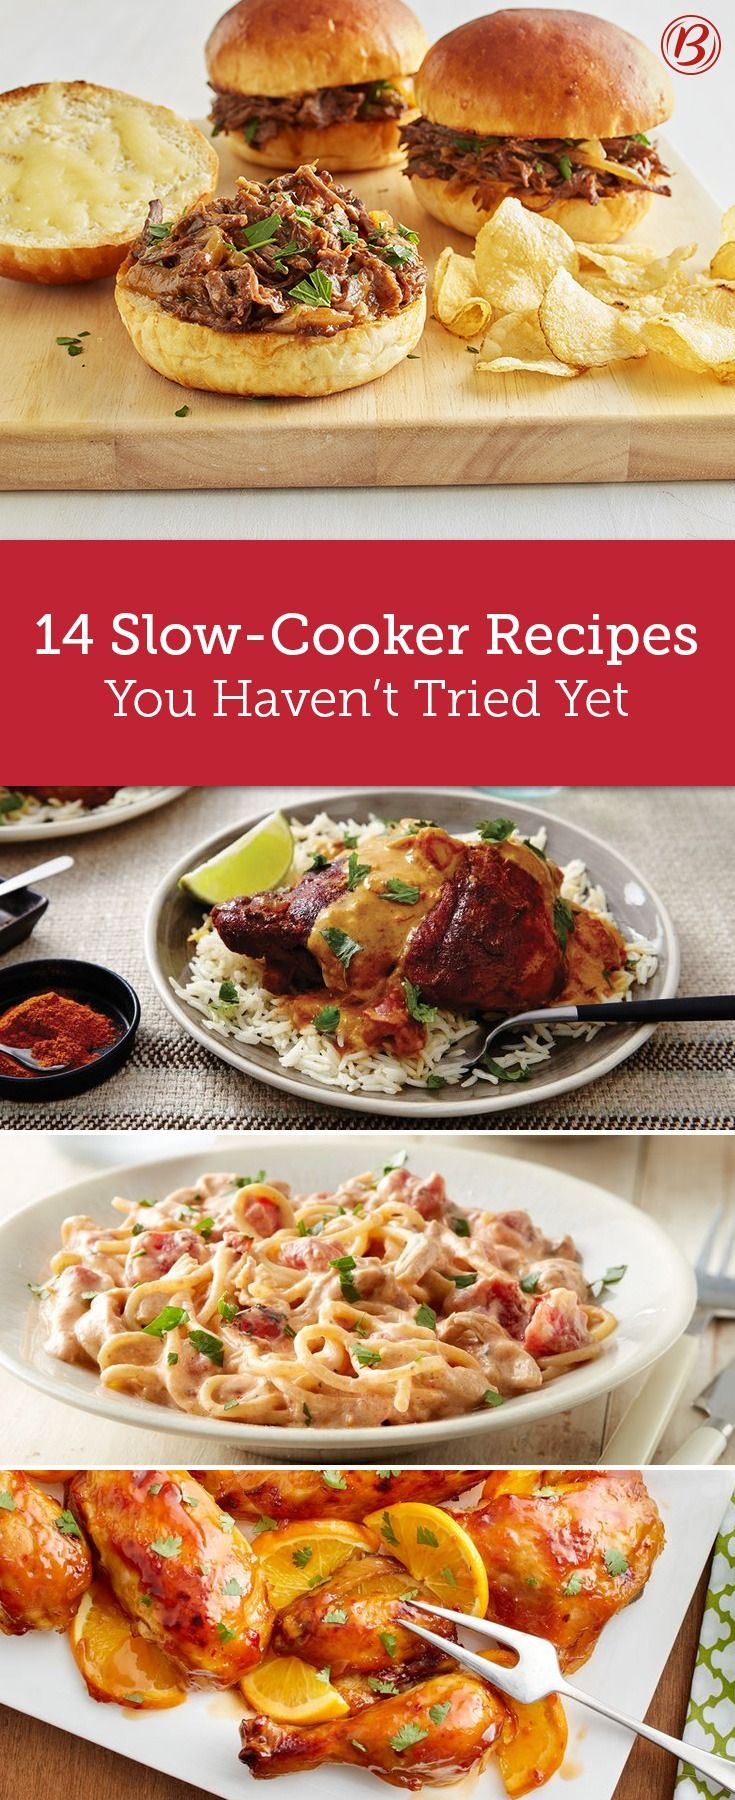 So long, dinner rut! These slow-cooker recipes bring fresh flavors to the table. From a cheesy spaghetti that is the definition of comfort food to a four-ingredient rotisserie-style chicken that's cooked to perfect with literally no effort, you've never tried dinners in your slow cooker like this before.